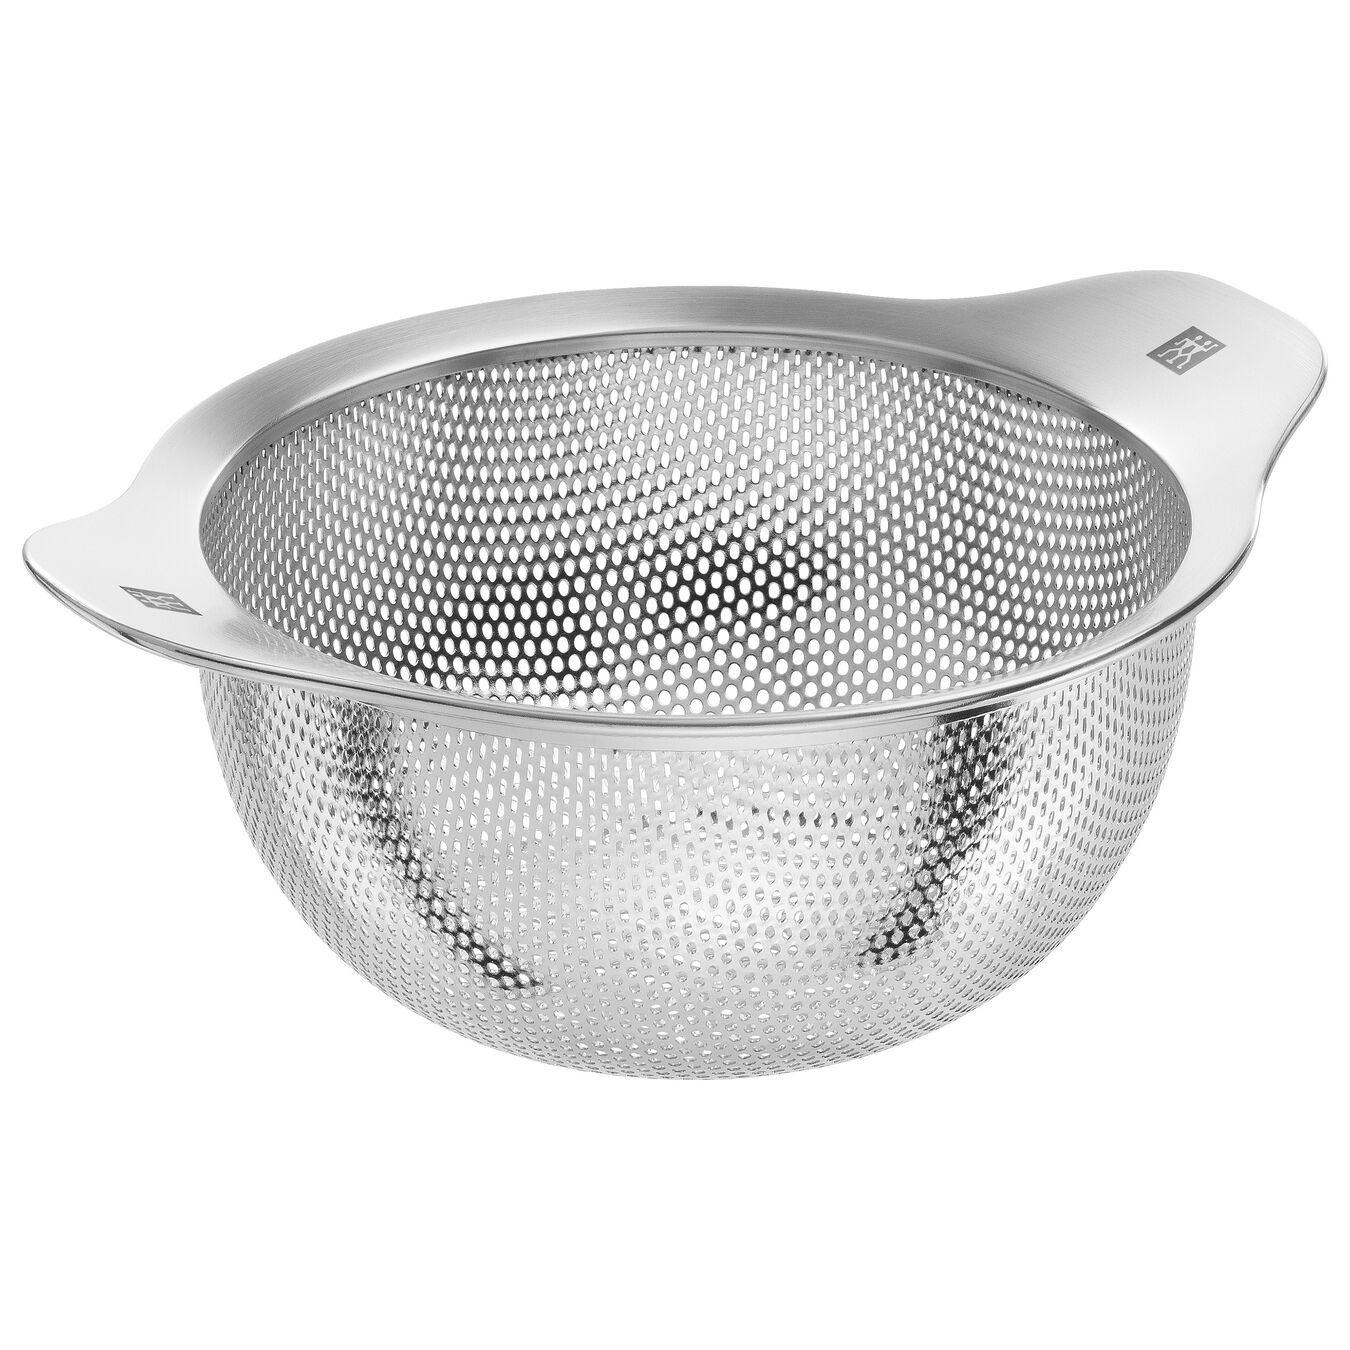 6-inch Colander, 18/10 Stainless Steel ,,large 1